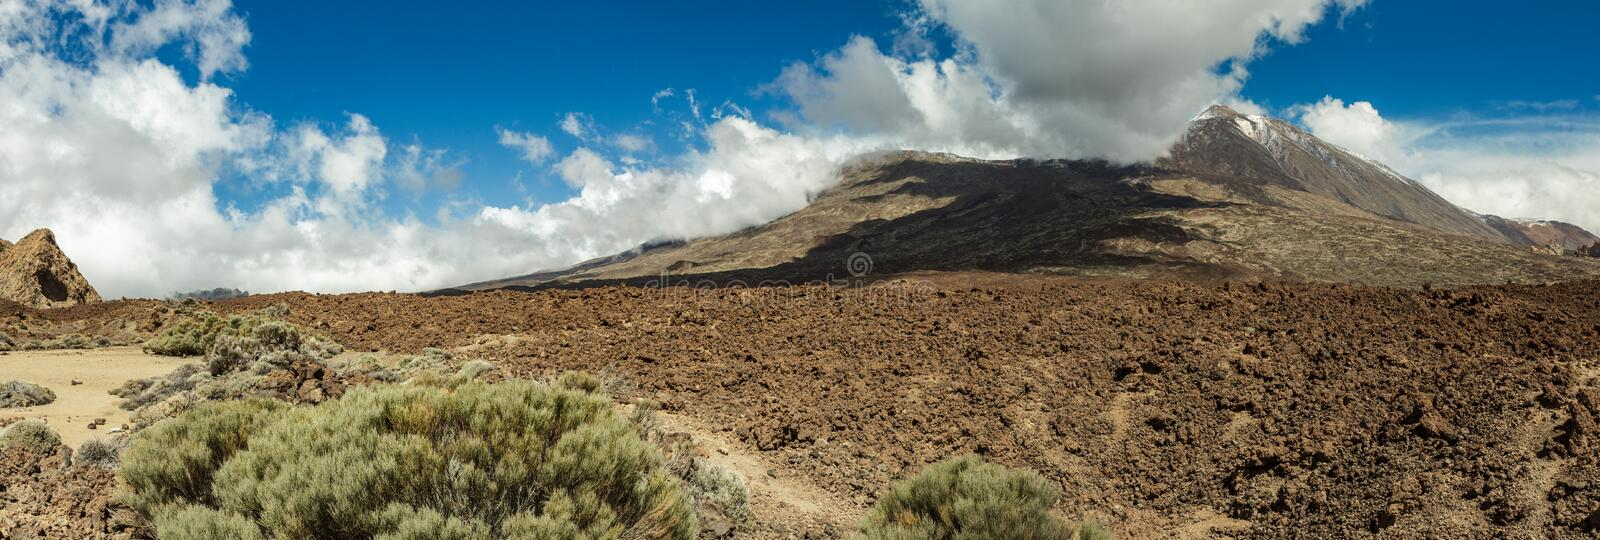 Mountain Teide with white snow spots, partly covered by the clouds. Bright blue sky. Teide National Park, Tenerife, Canary Islands stock photo